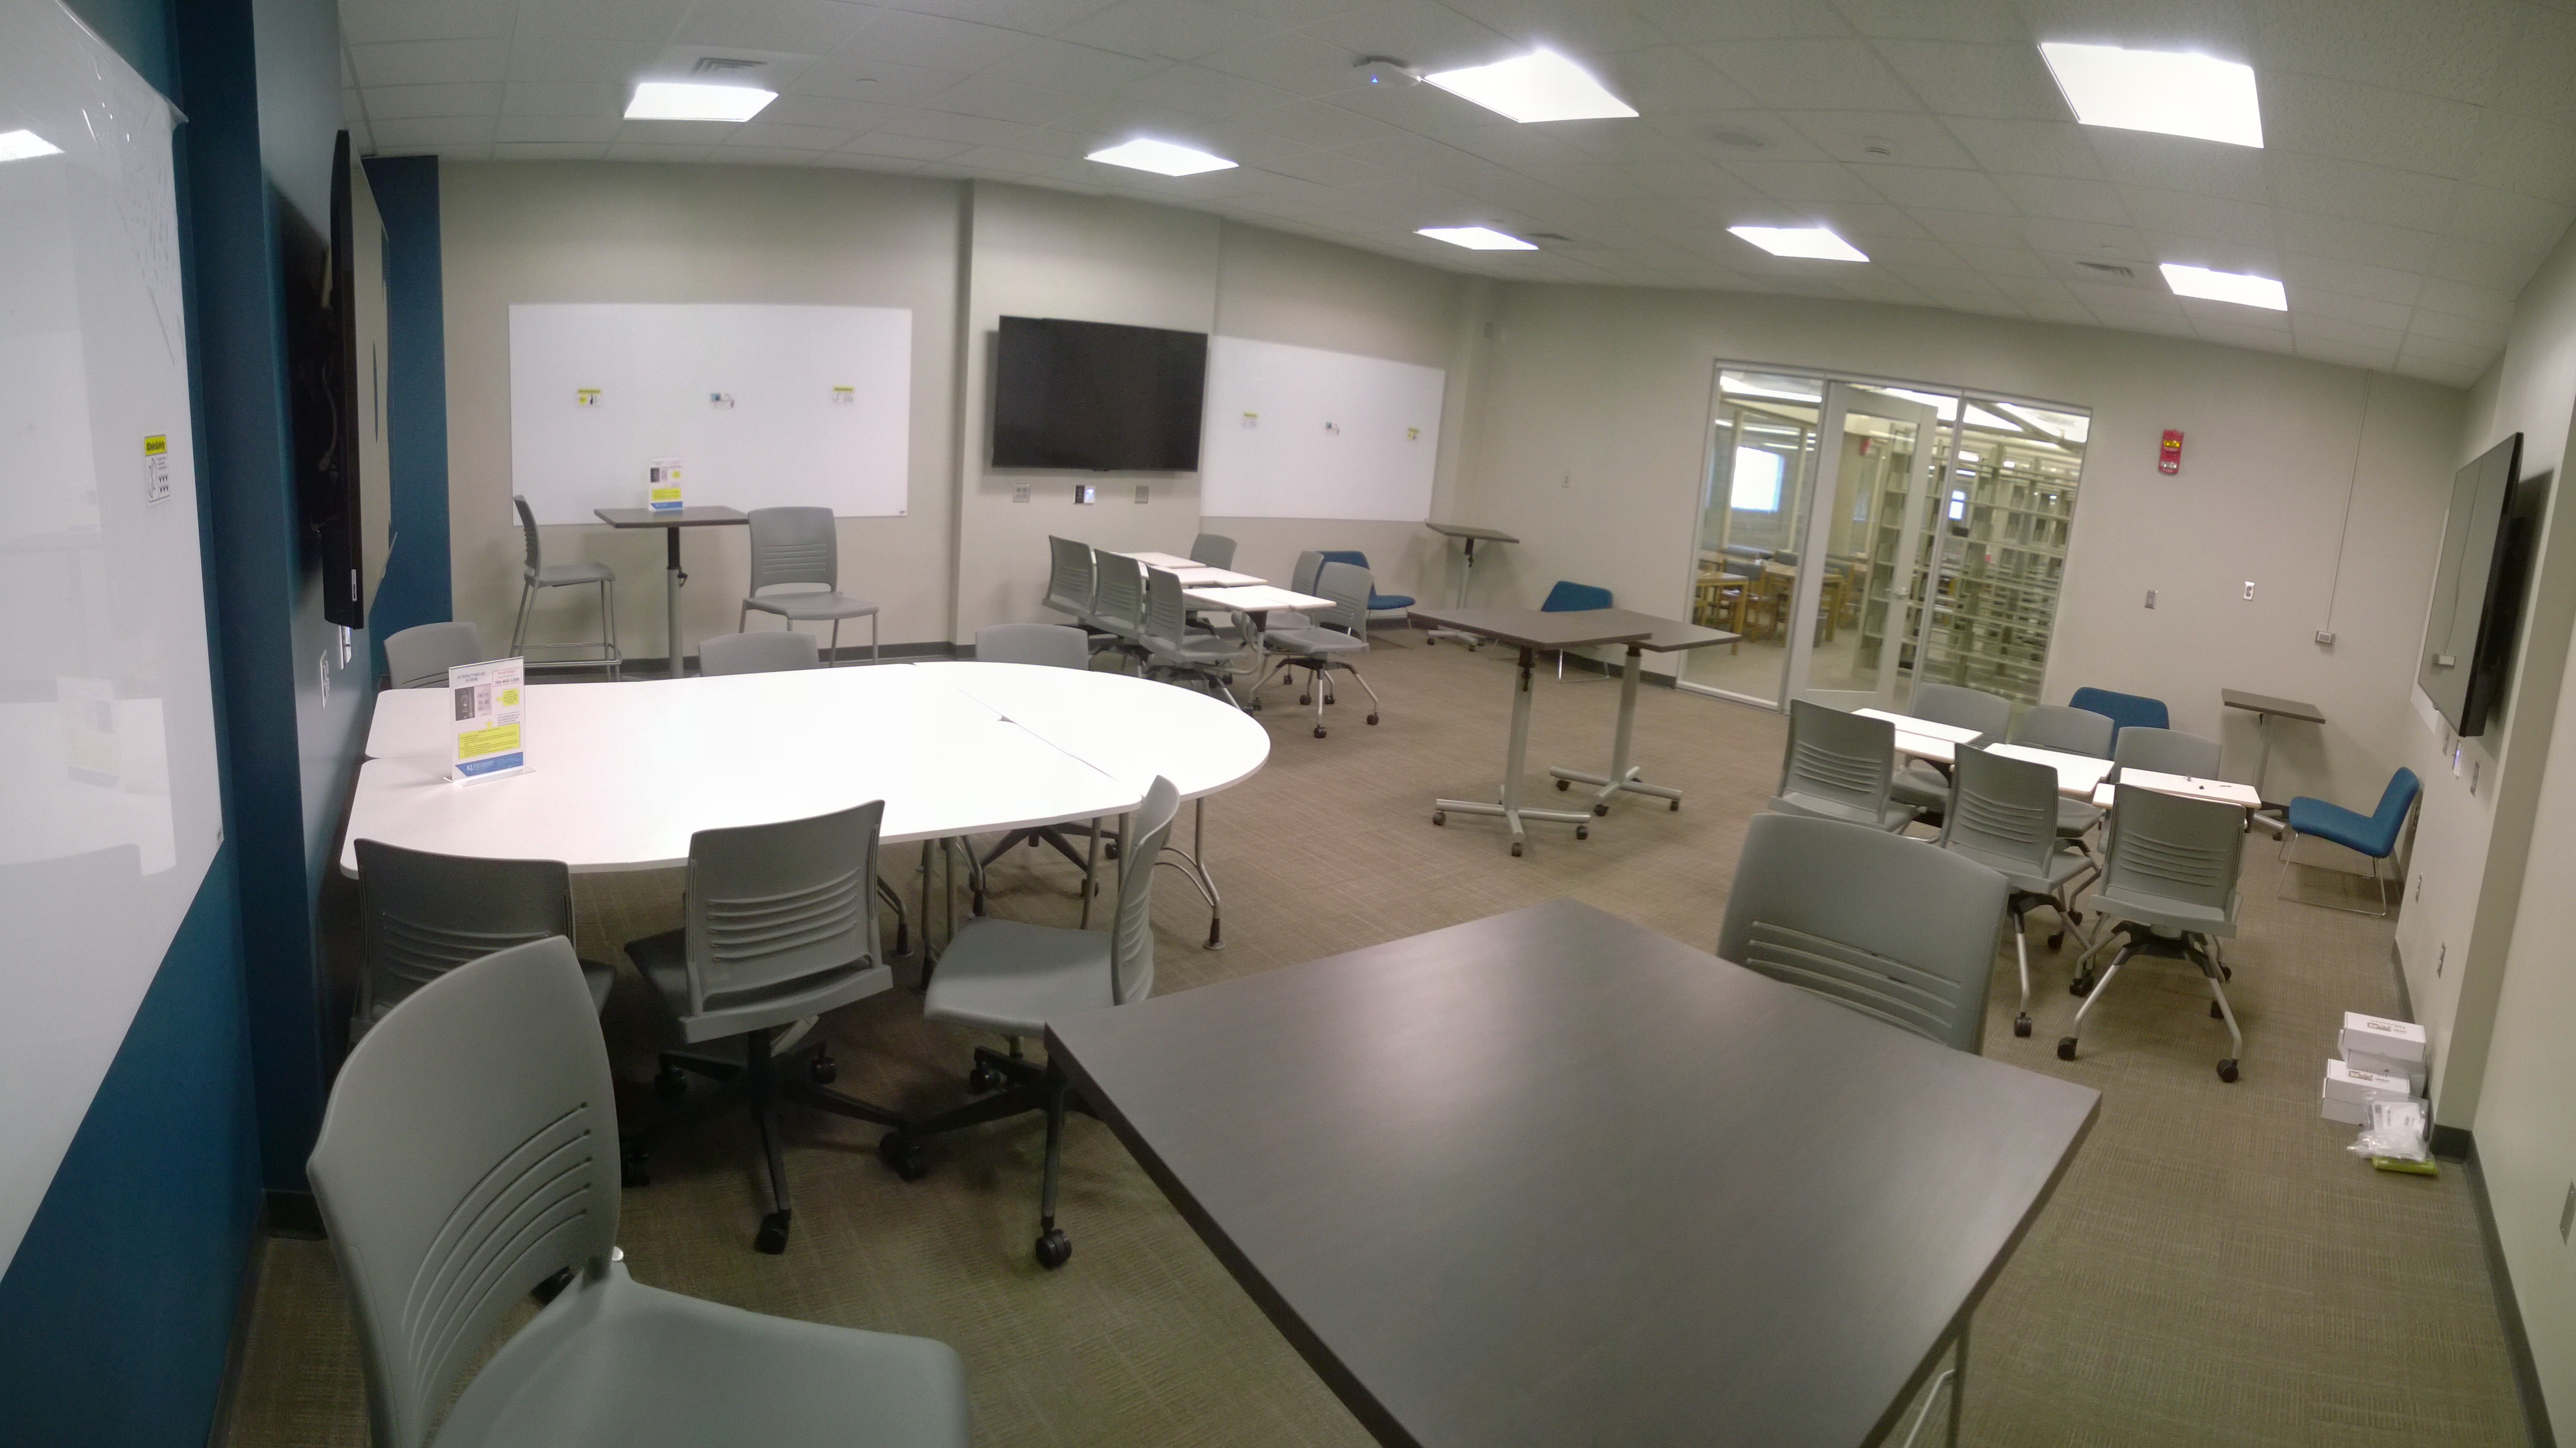 panorama of new classroom in Anschutz Library